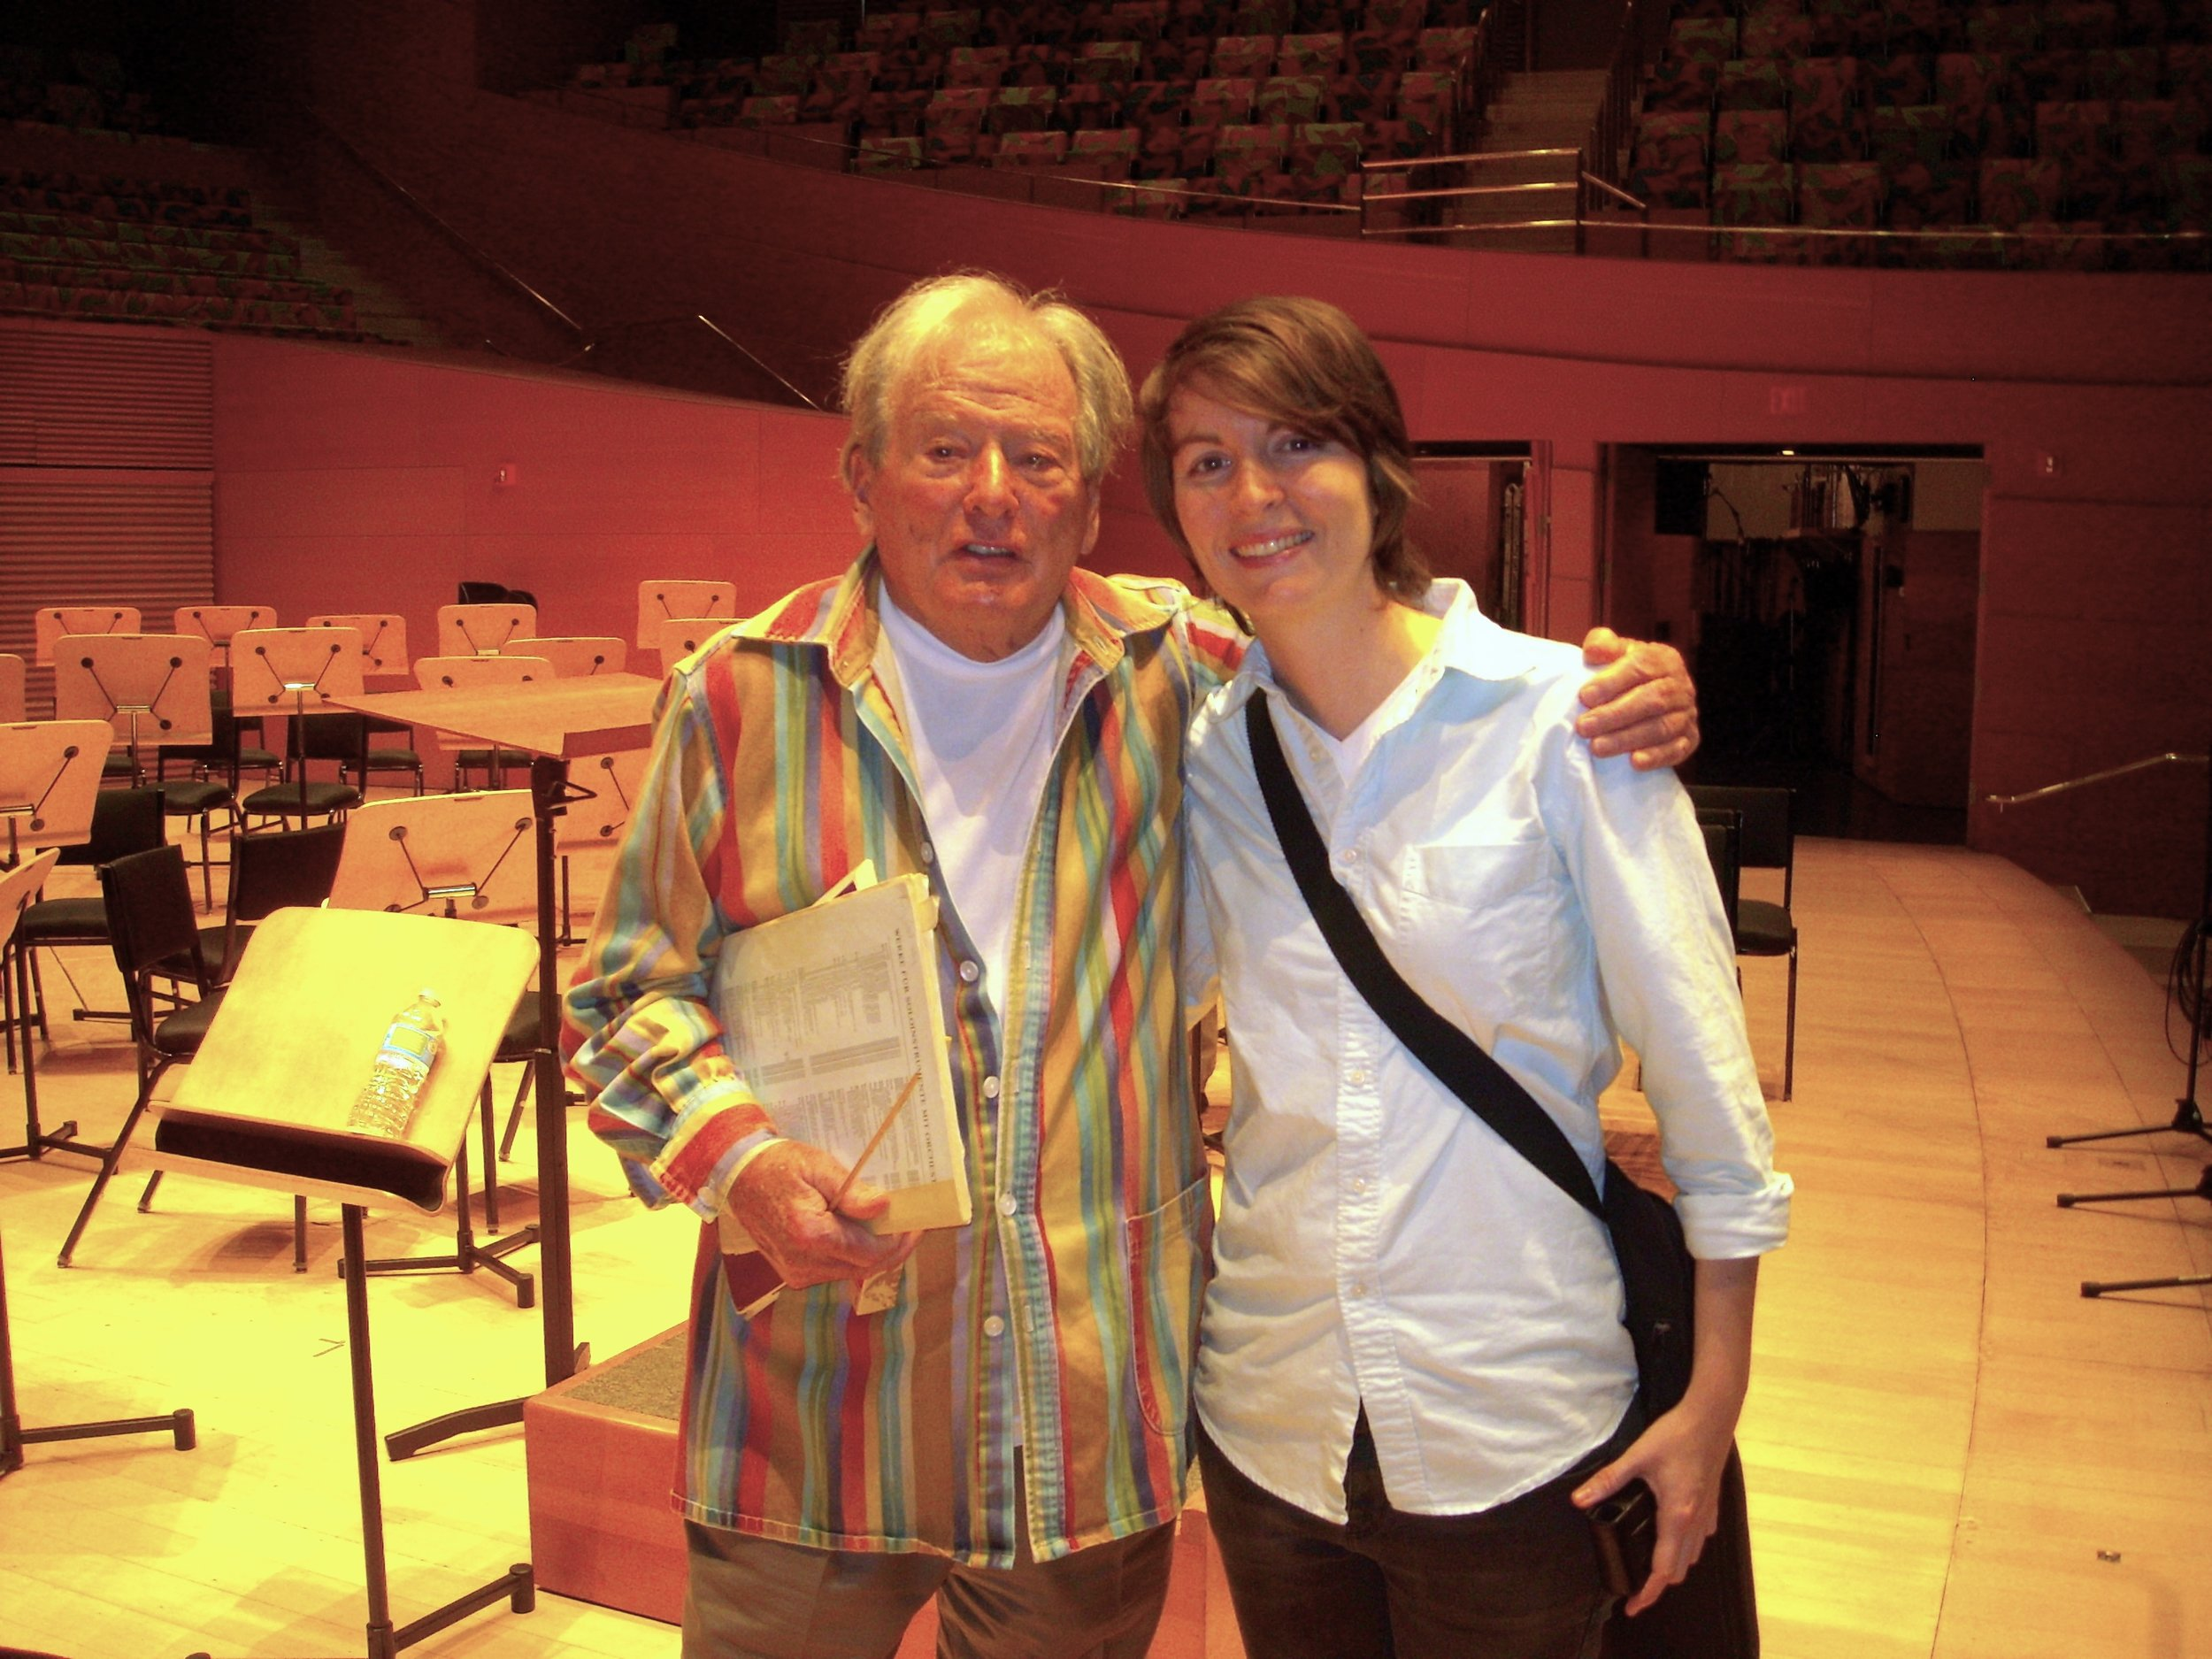 after rehearsal with Sir Neville Marriner